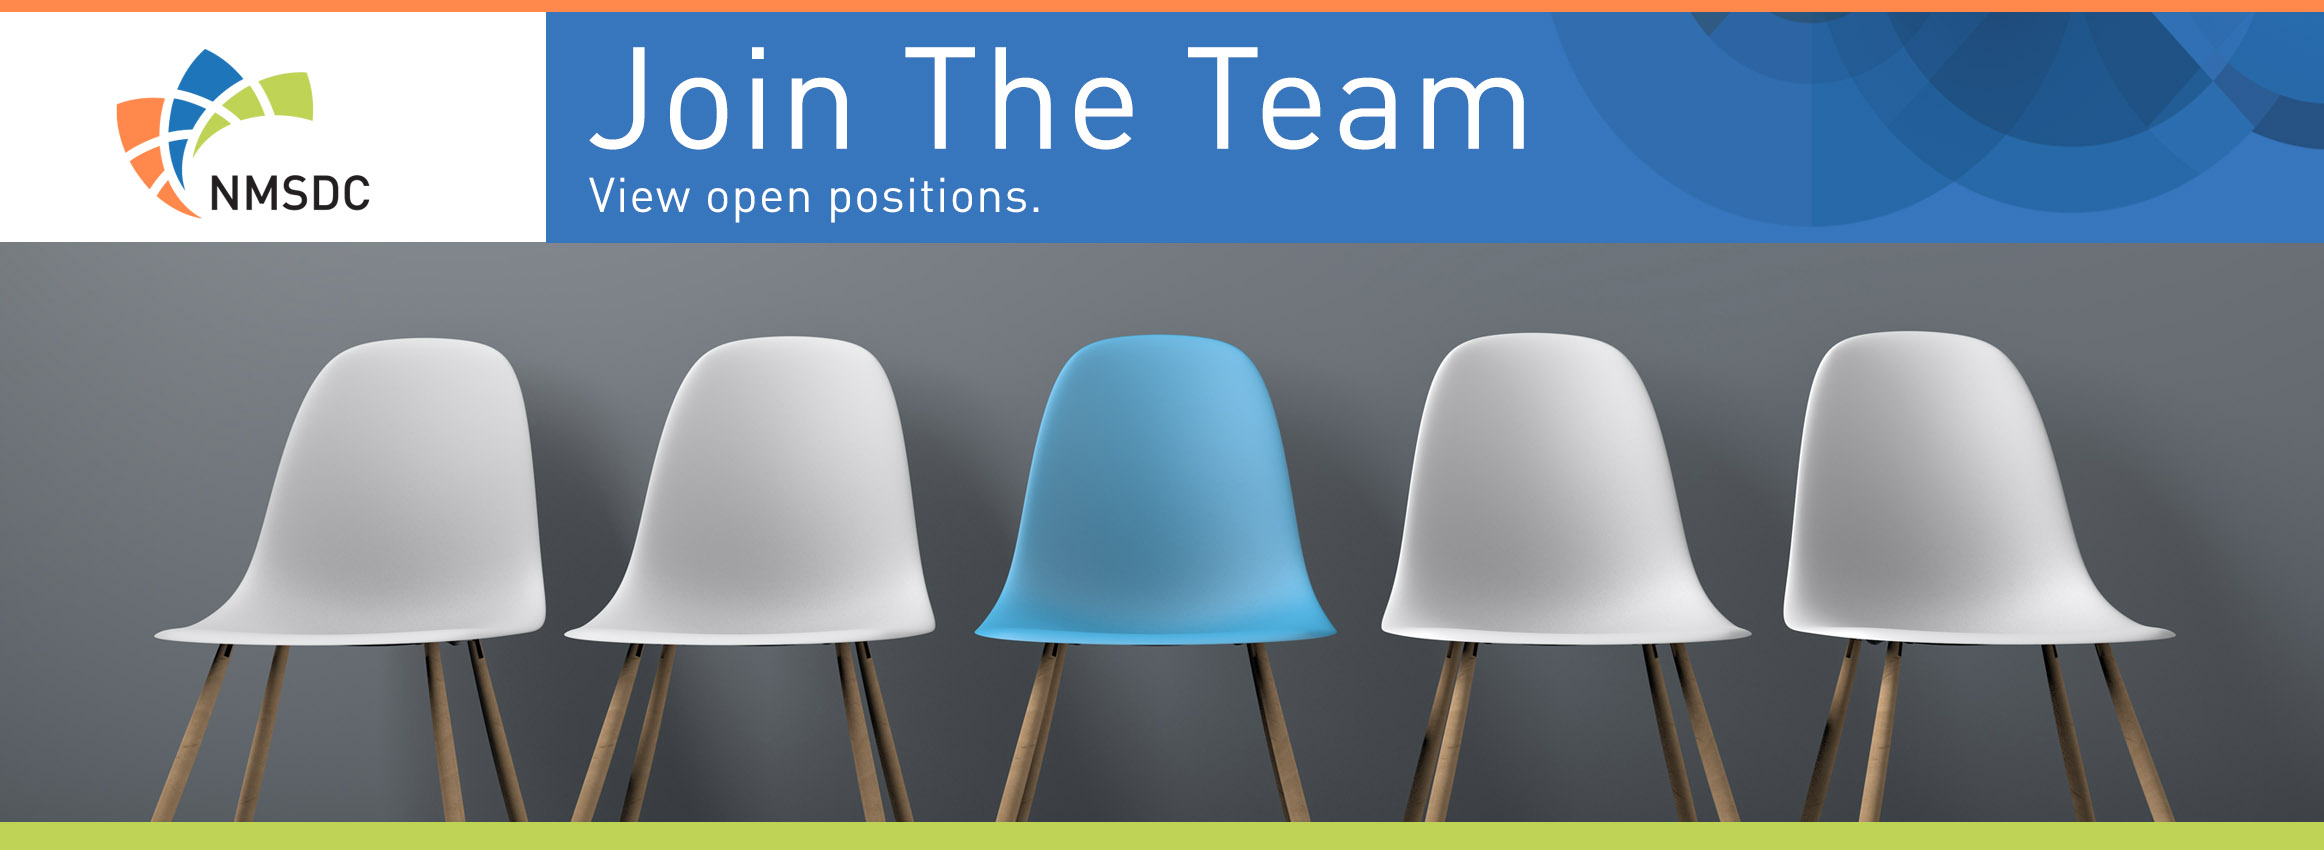 Join Team NMSDC